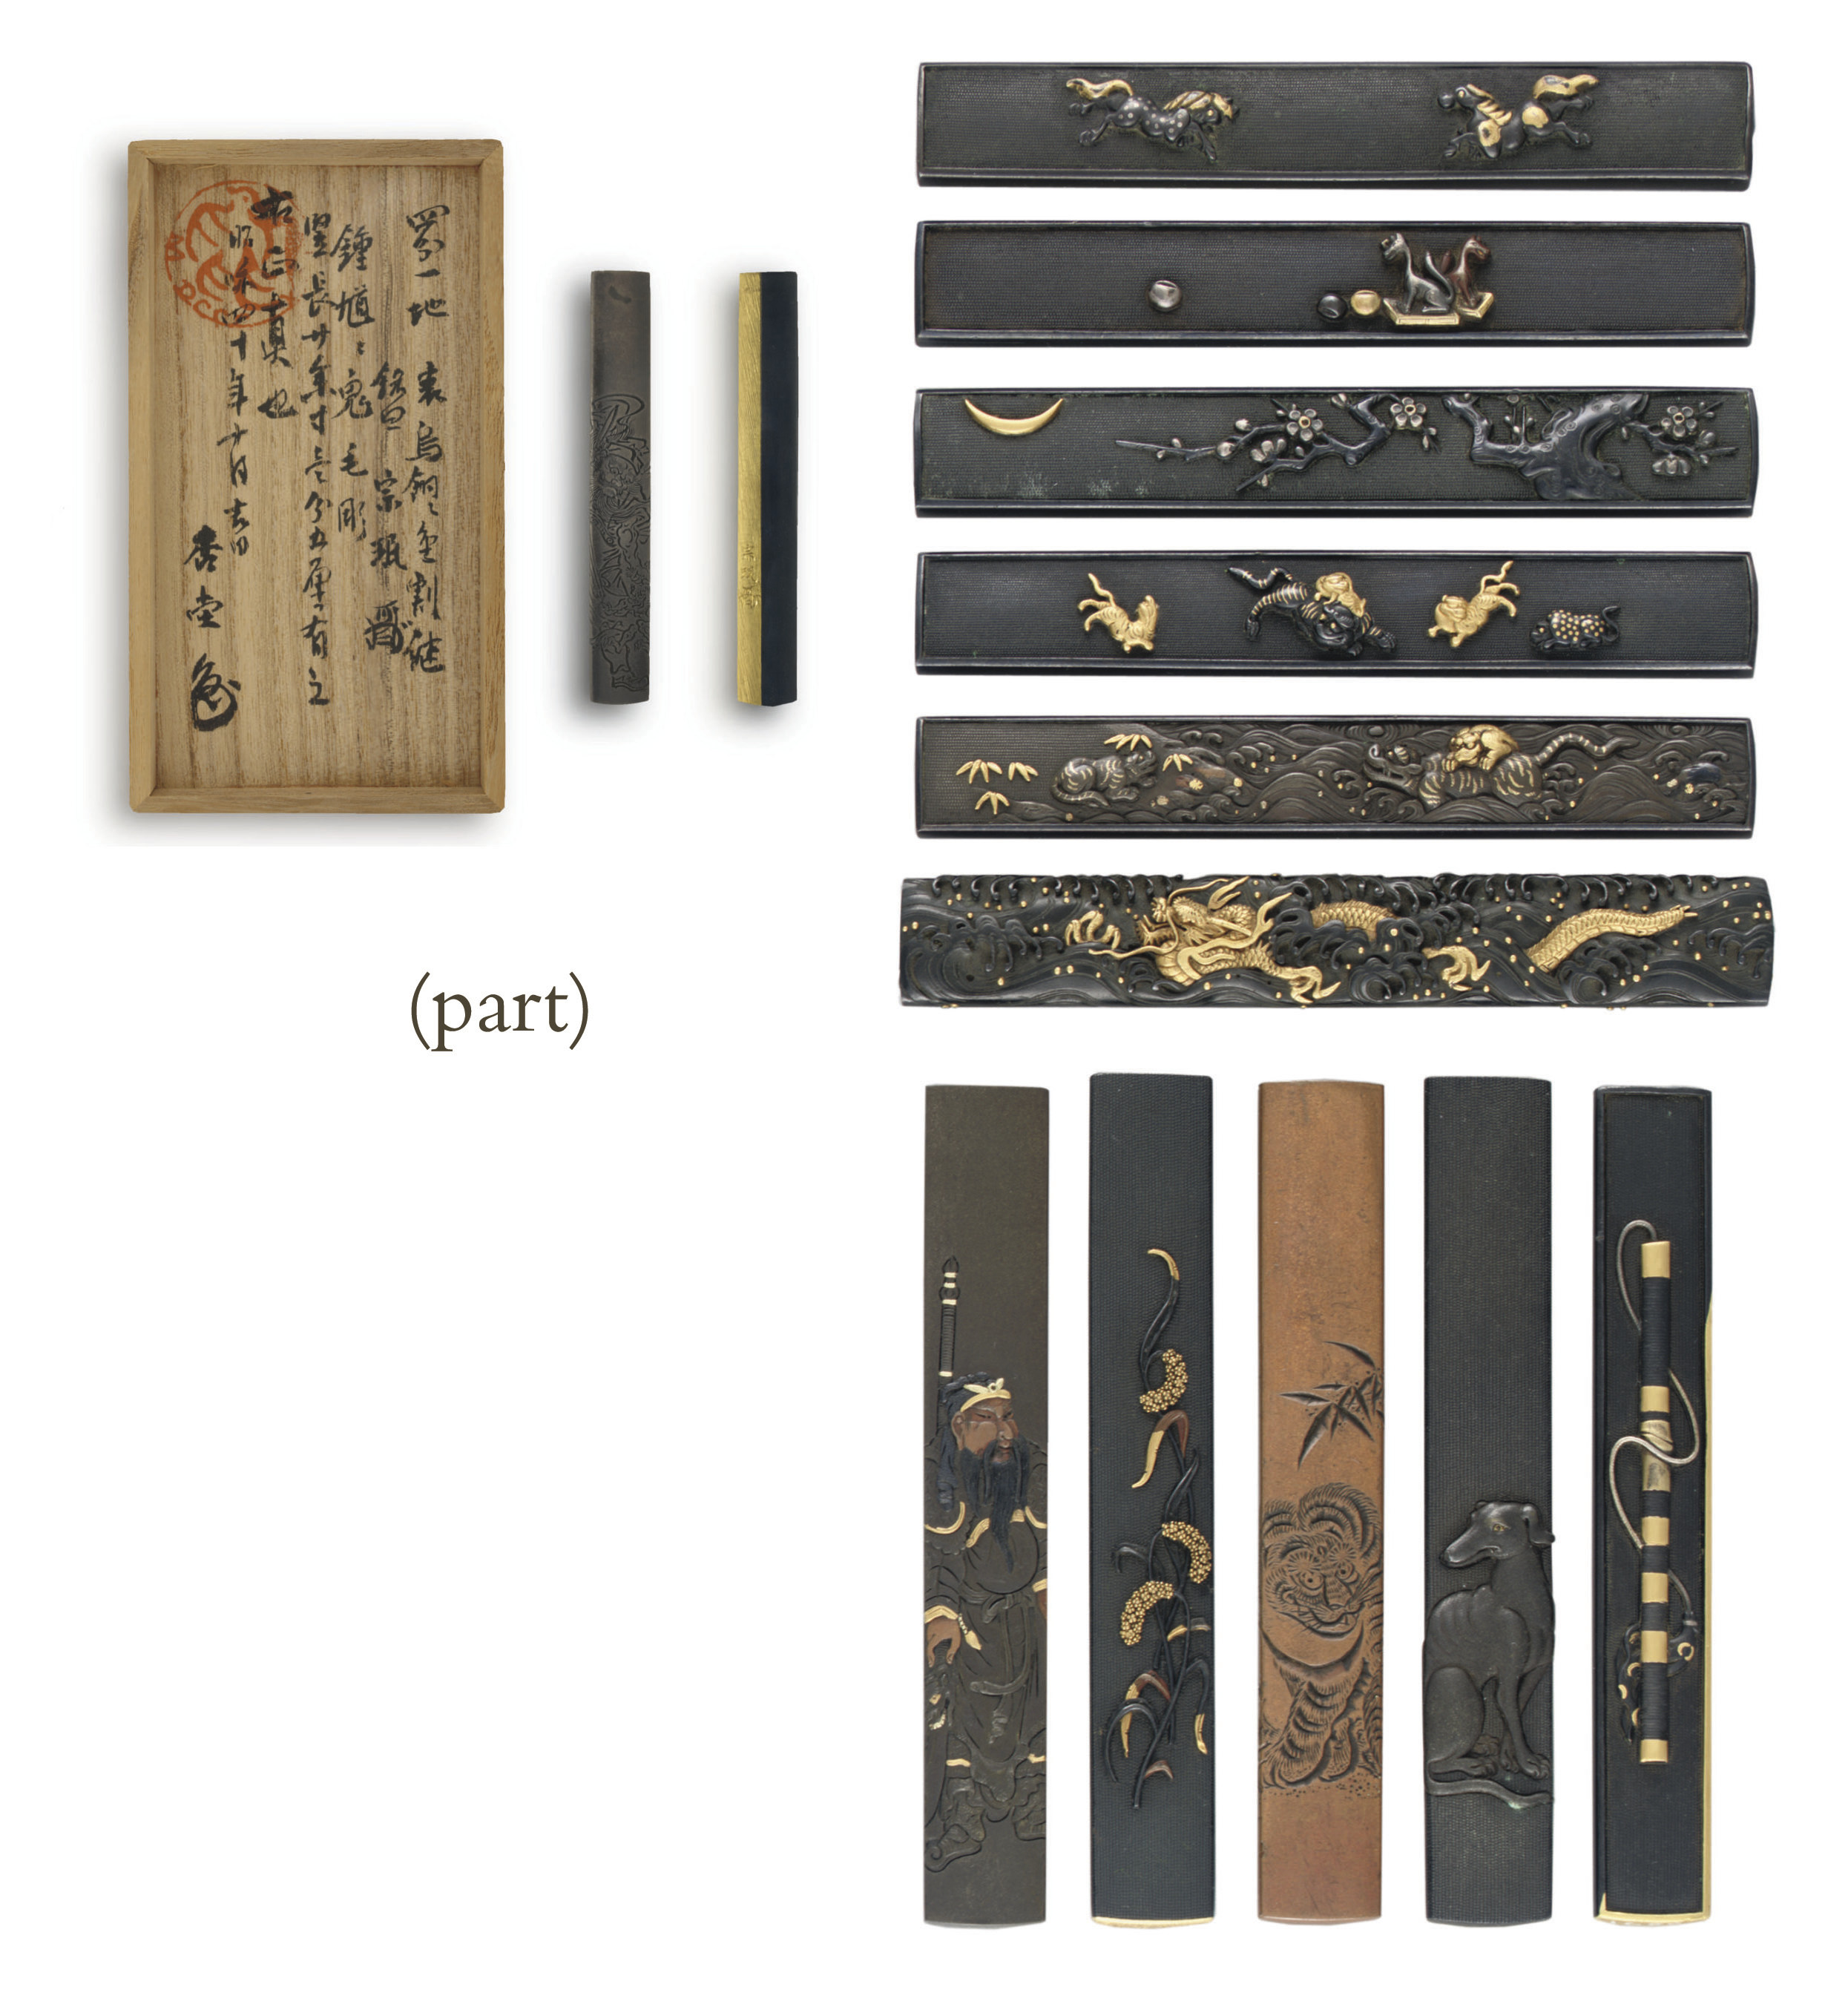 A group of seventeen kozuka